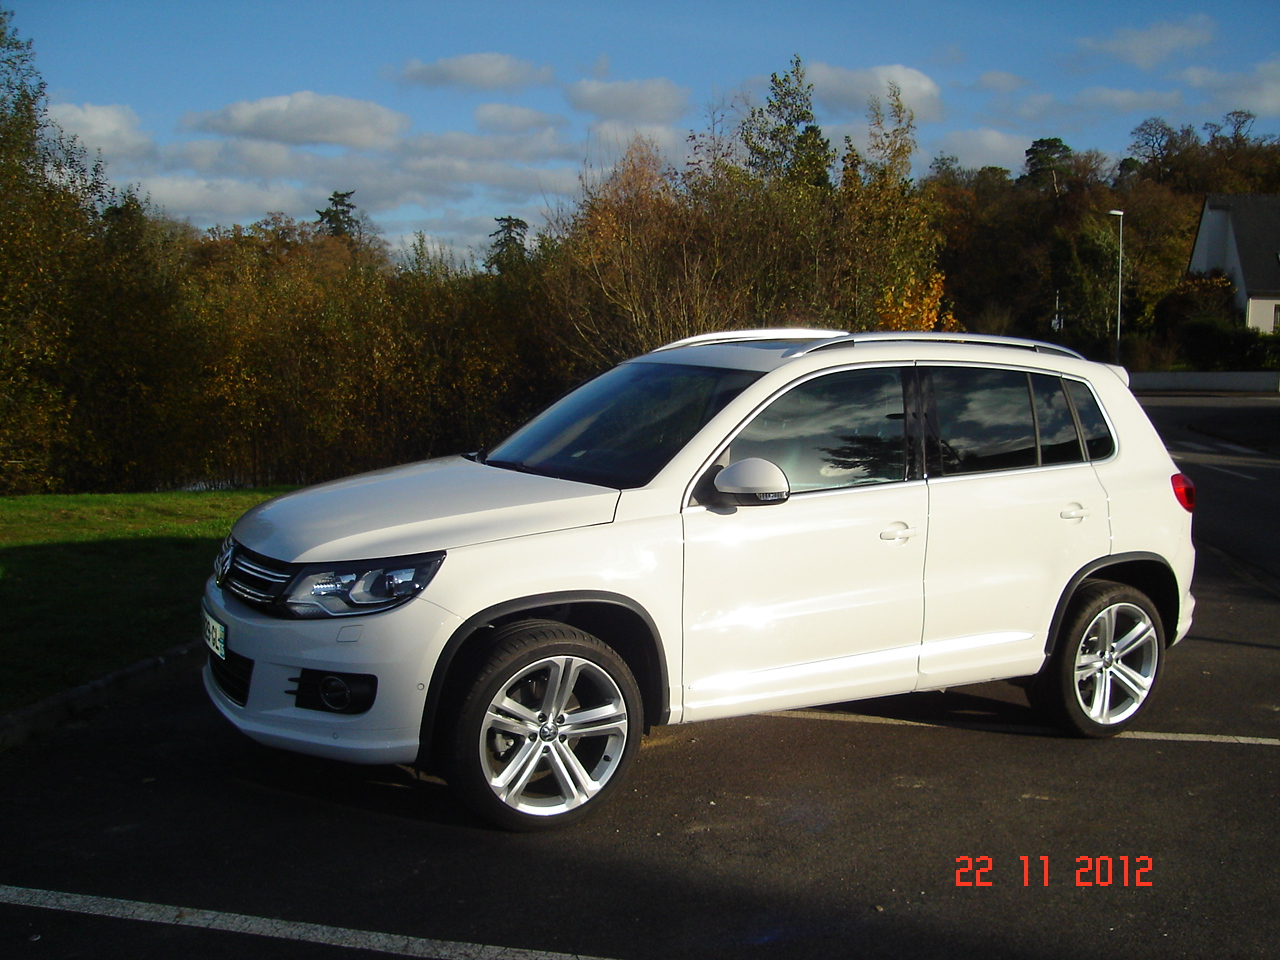 volkswagen tiguan 140 tdi carat r line 19 x nons leds car fever. Black Bedroom Furniture Sets. Home Design Ideas